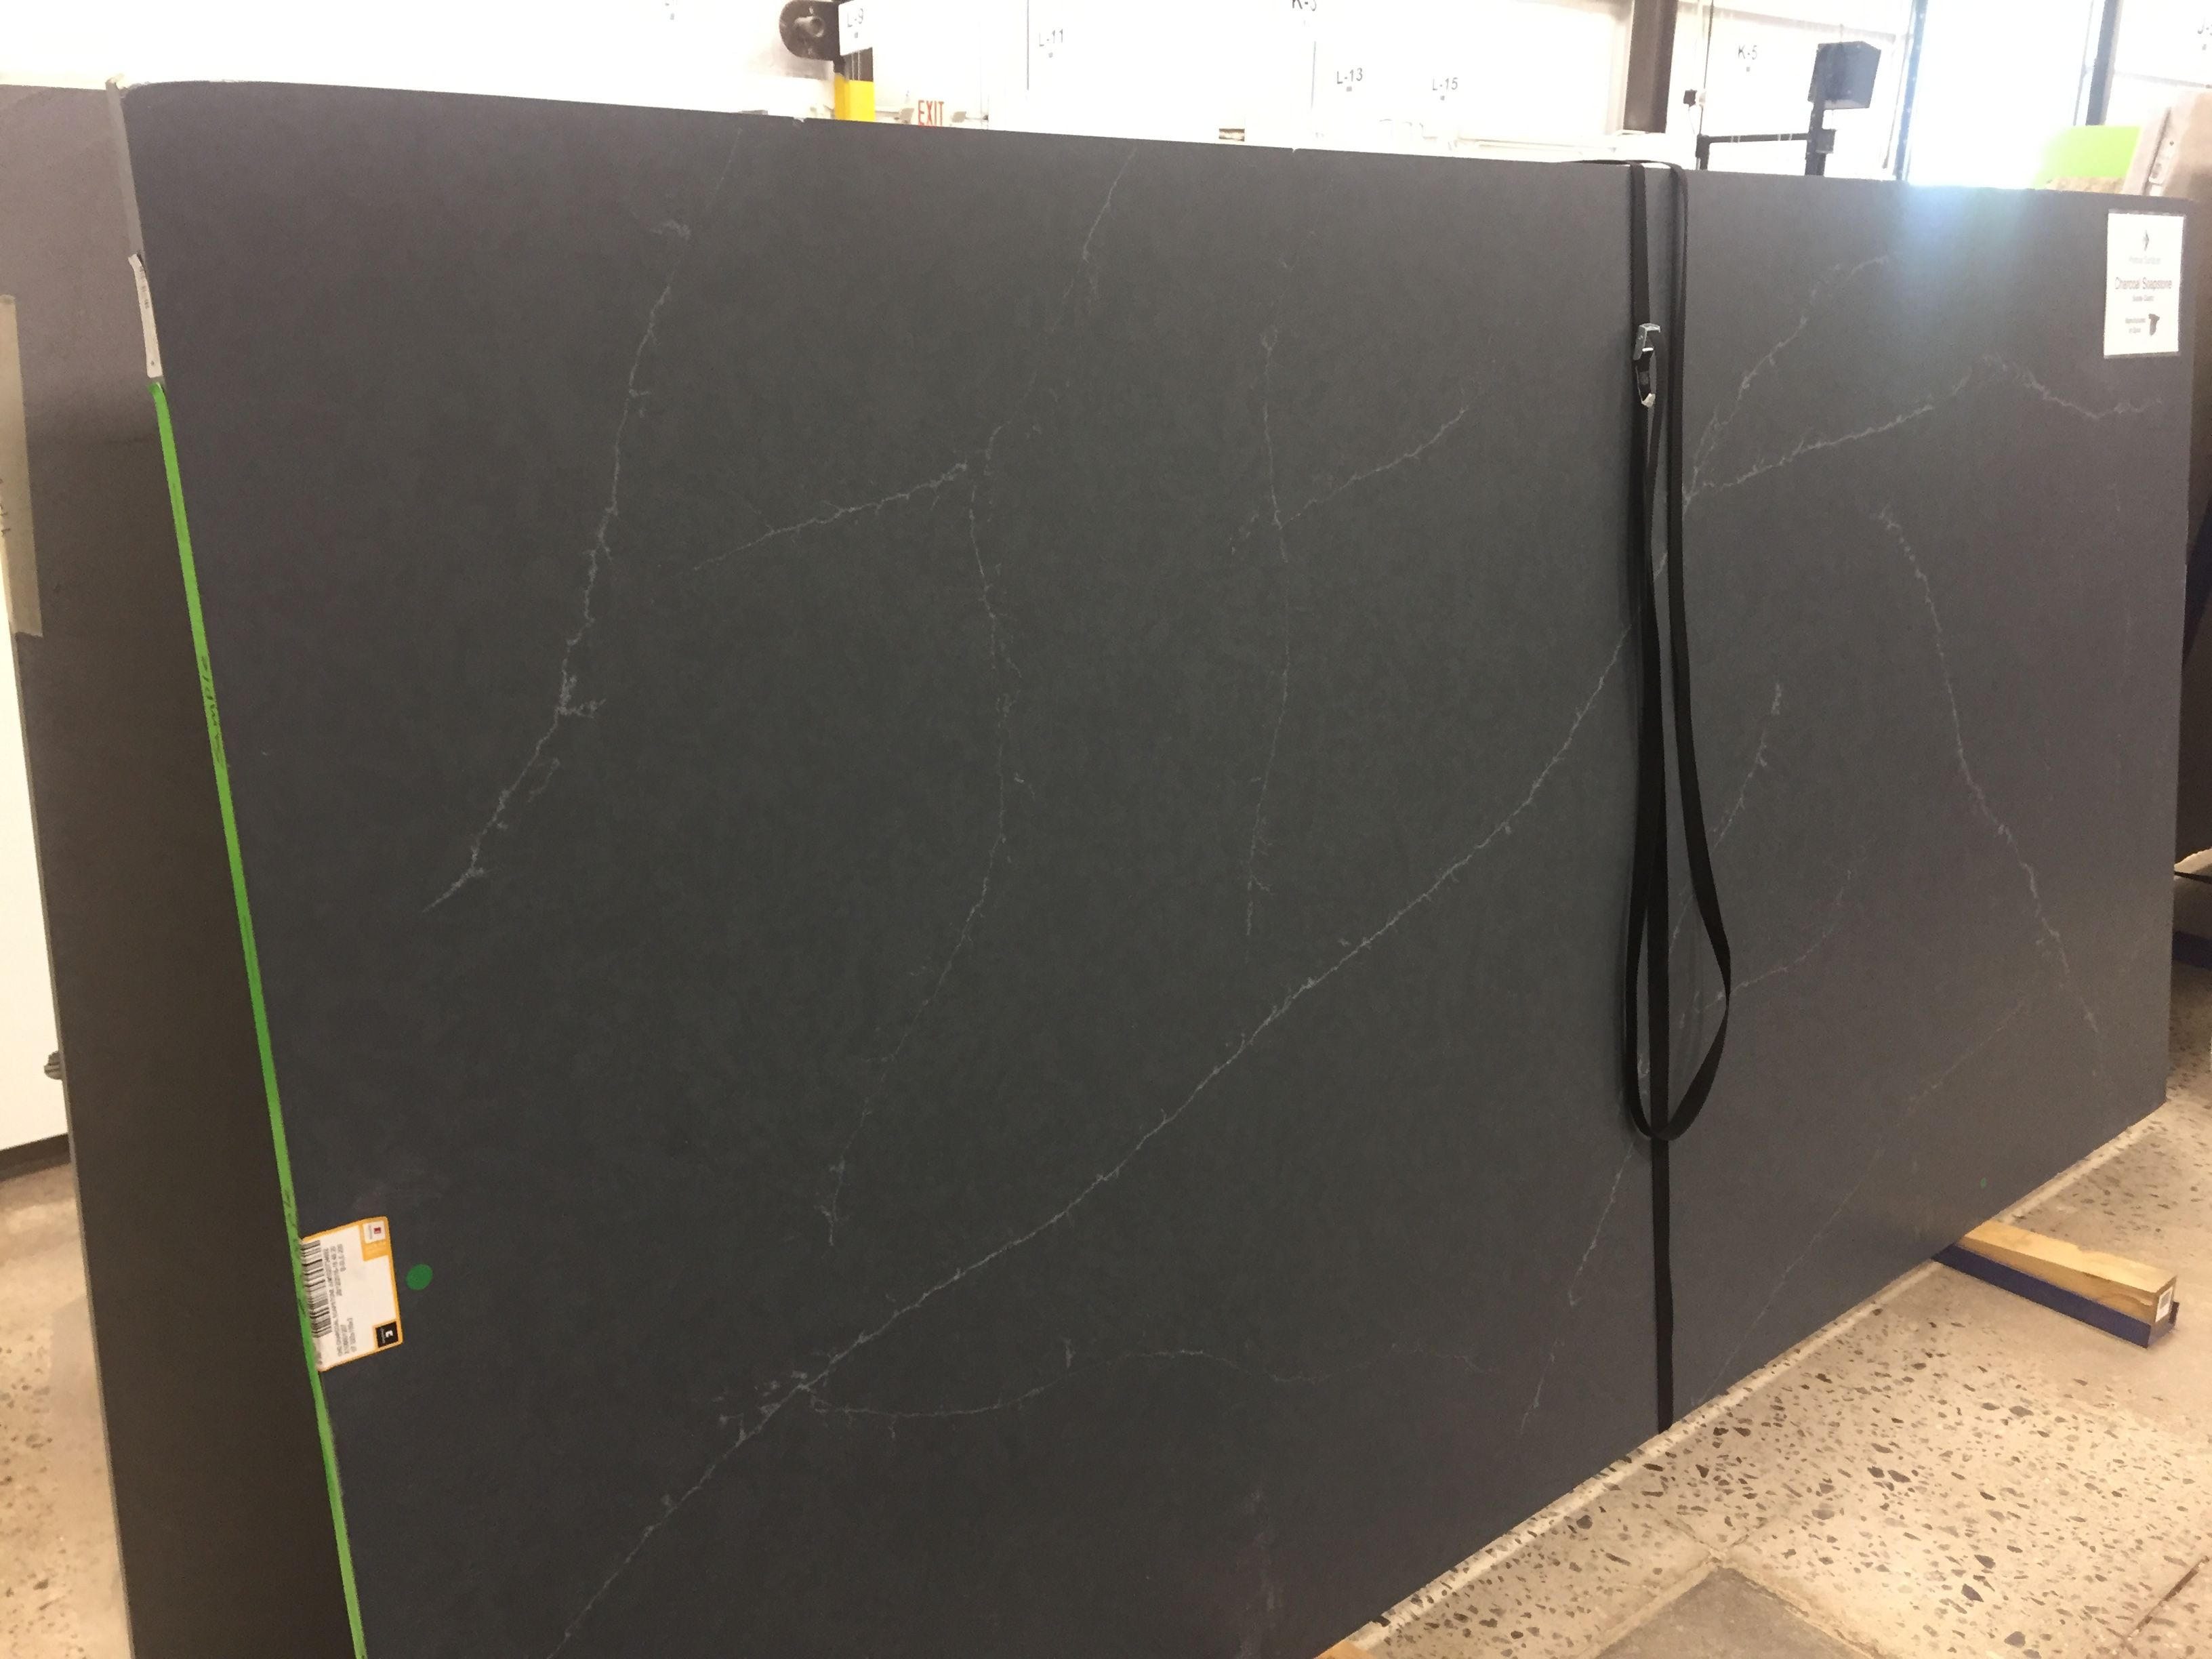 Charcoal Soapstone Quartz Eternal Collection By Silestone Remodel Kitchen Remodel Diy Concrete Countertops